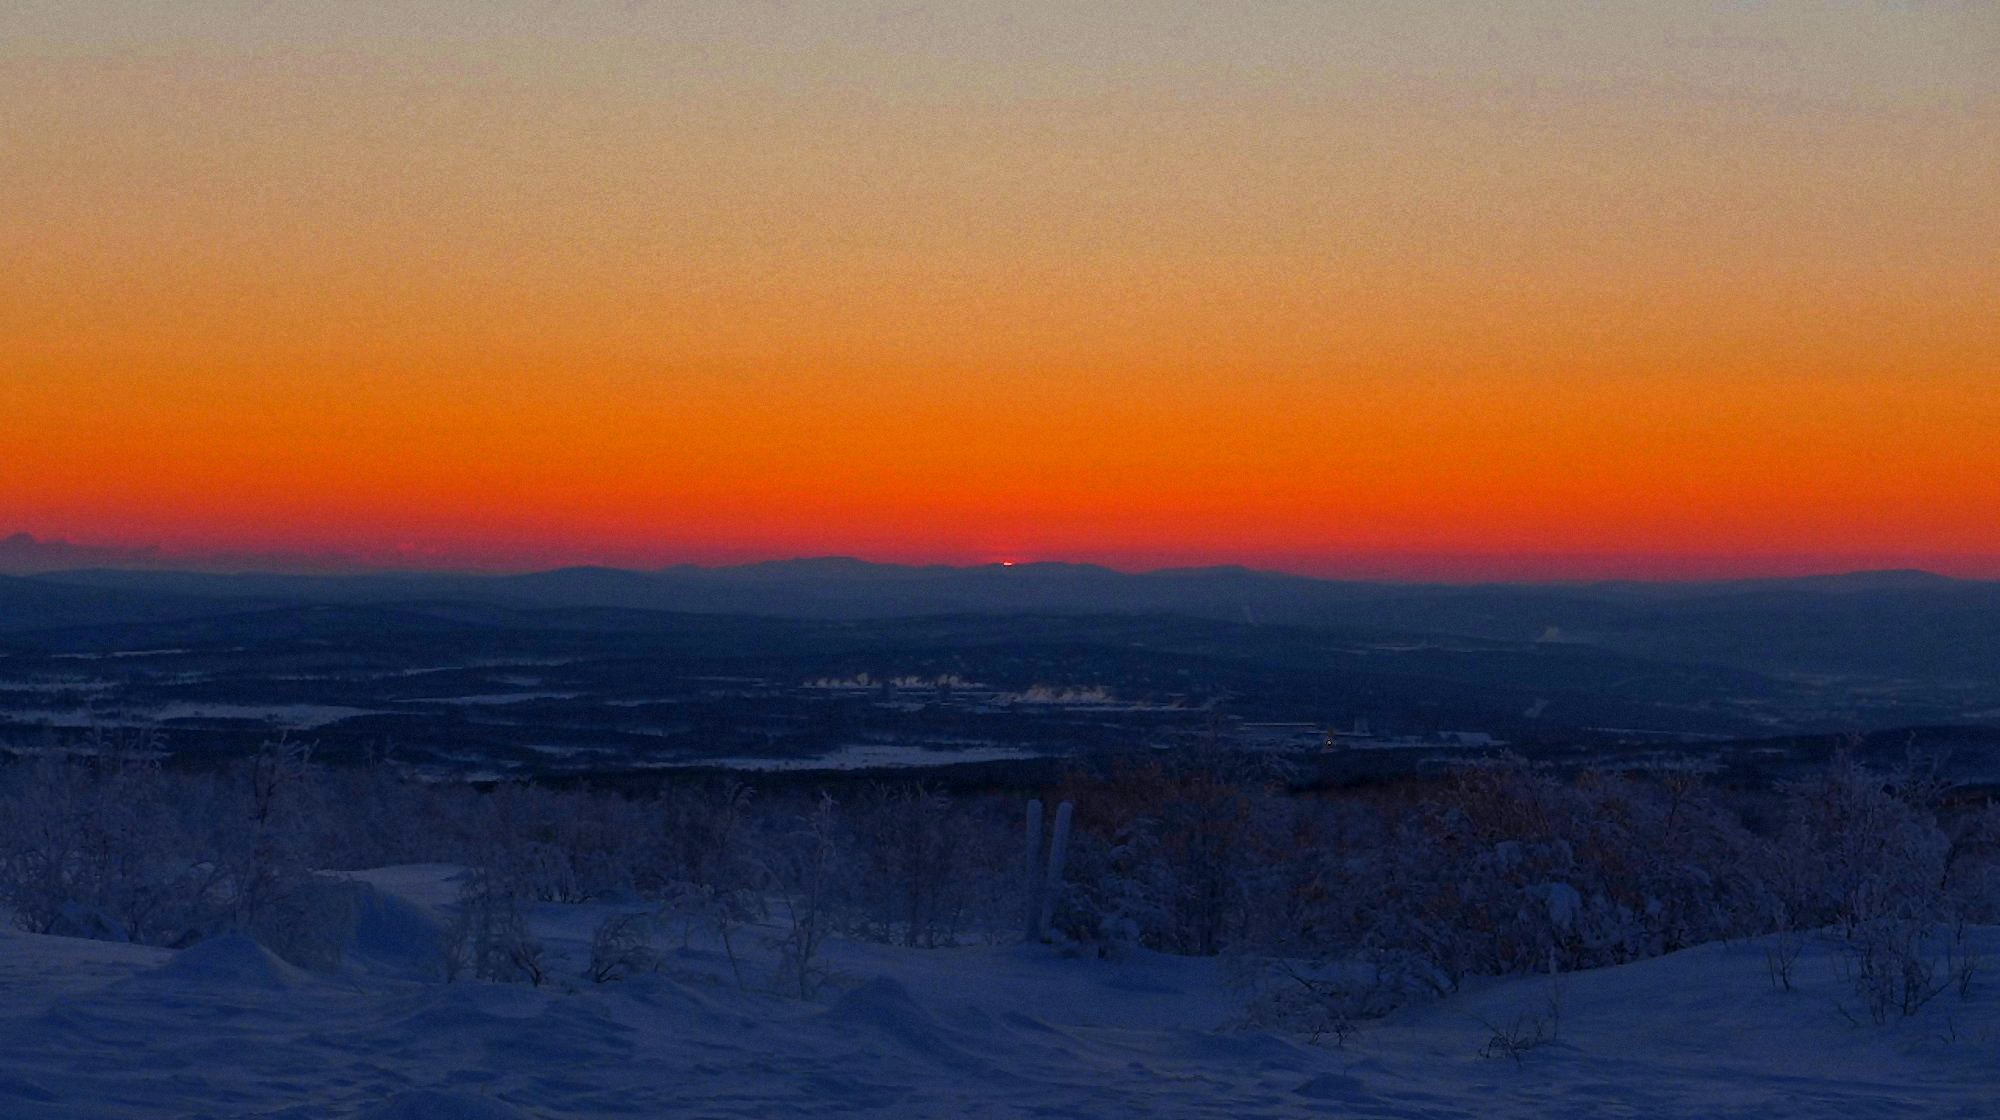 00 polar sunset in Murmansk 061215